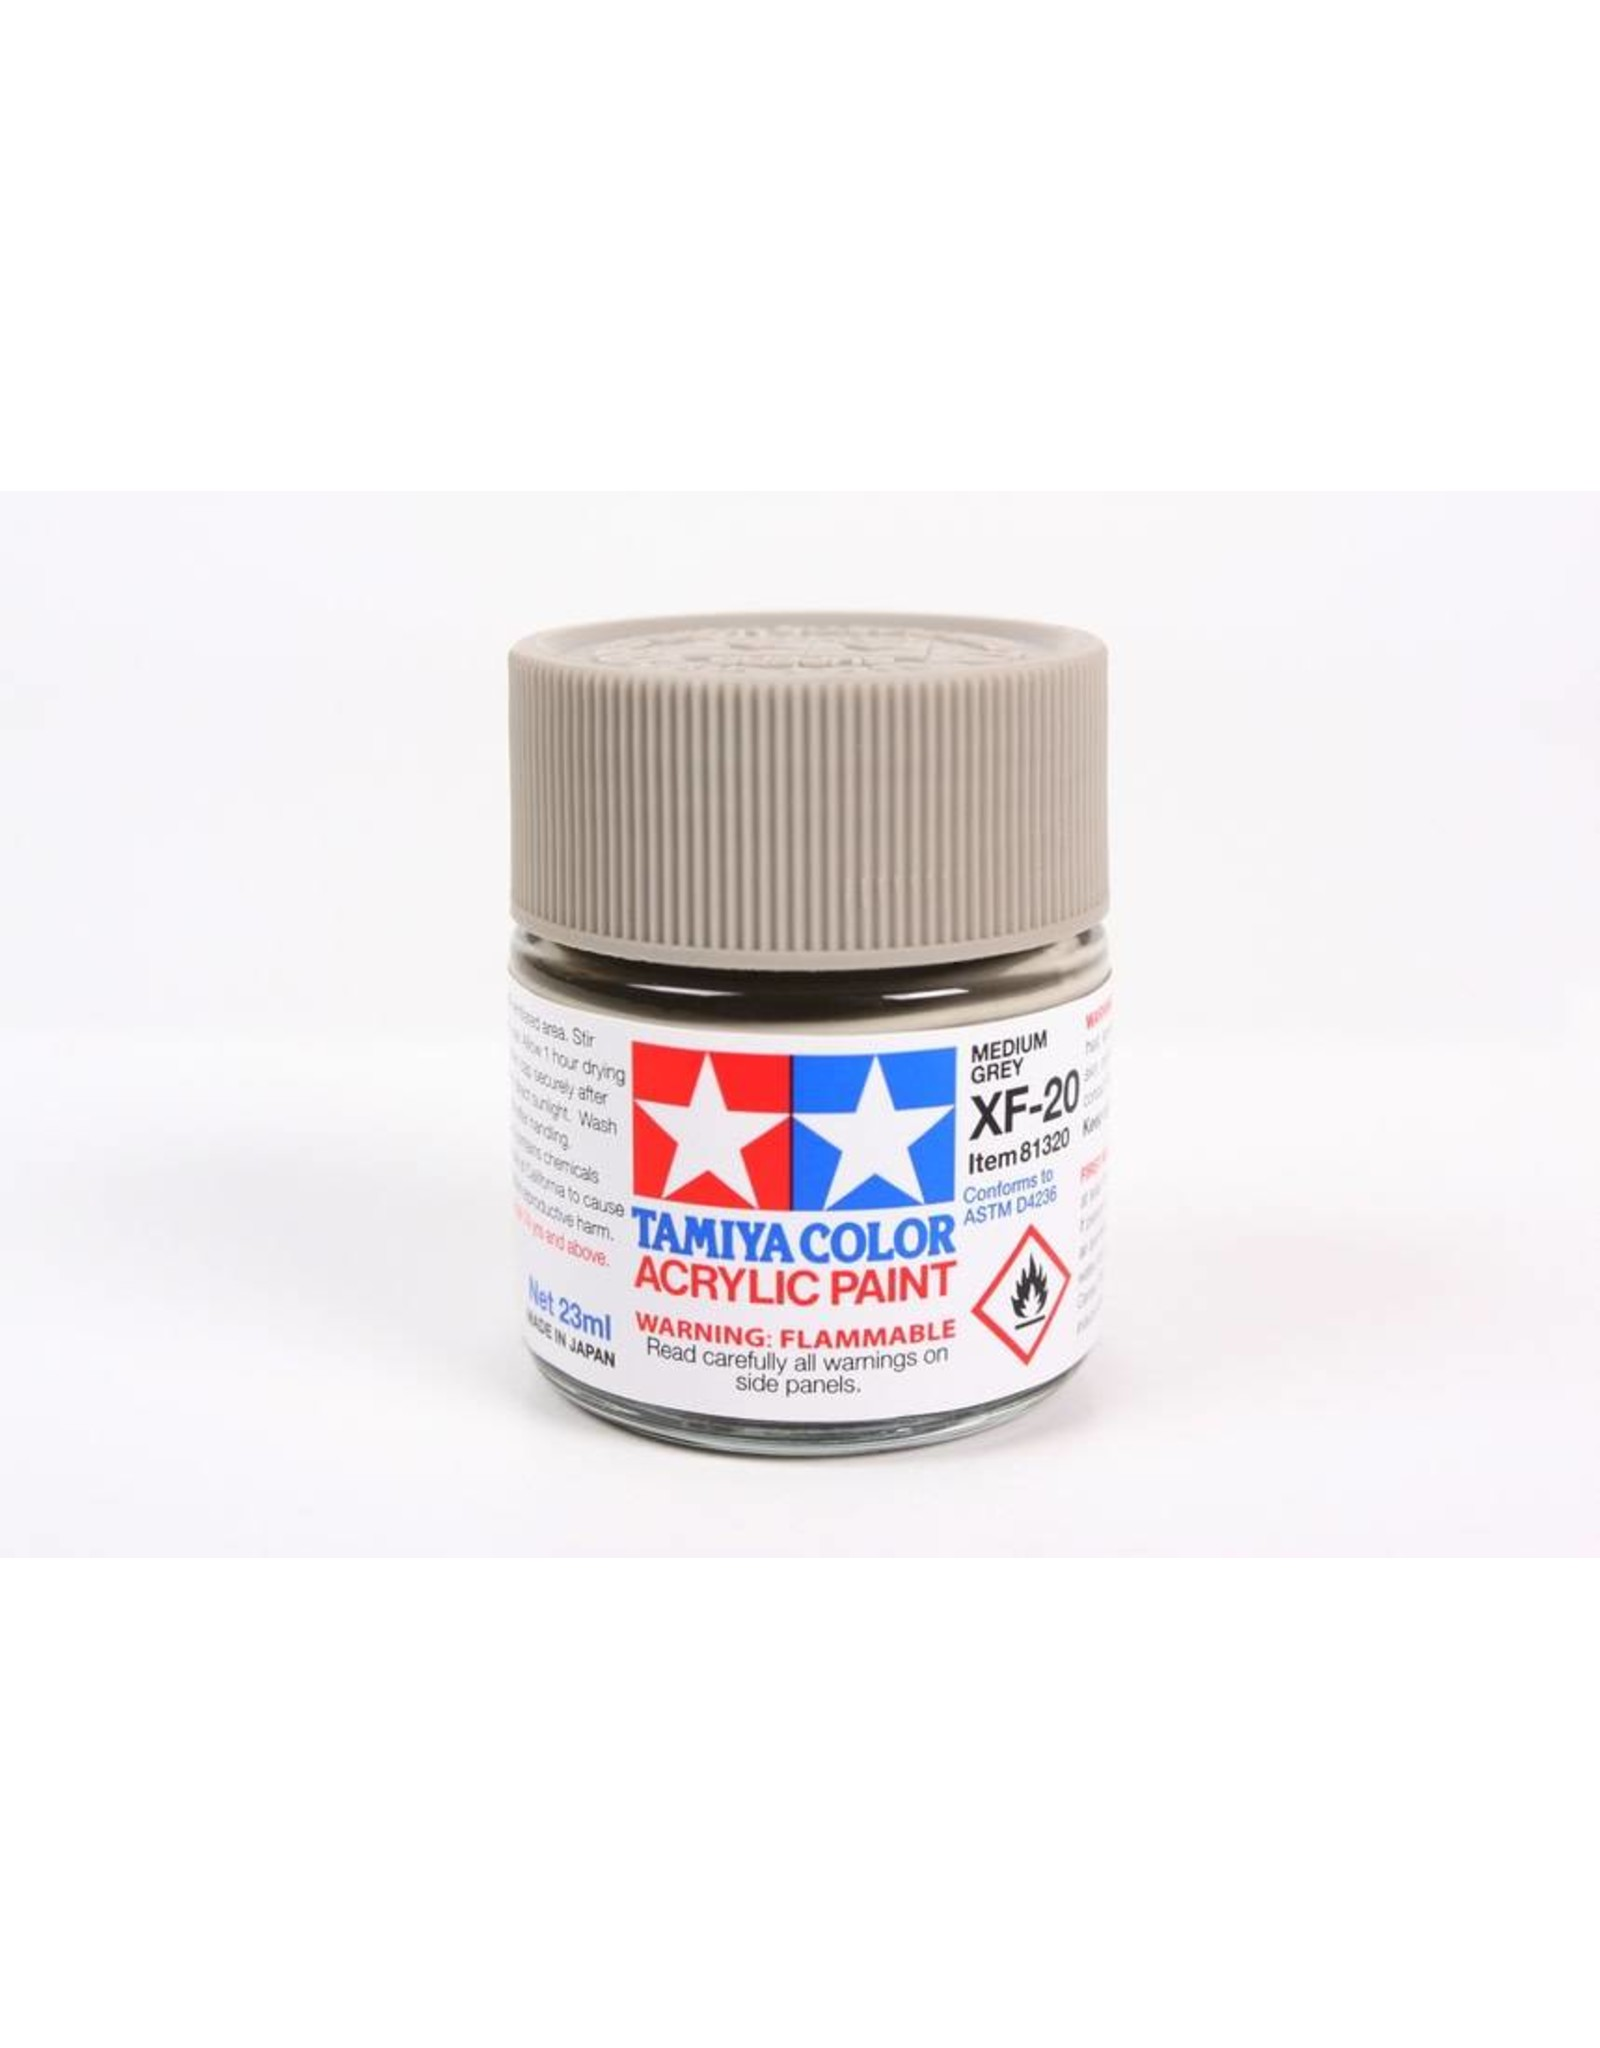 Tamiya Acrylic XF-20 Medium Grey